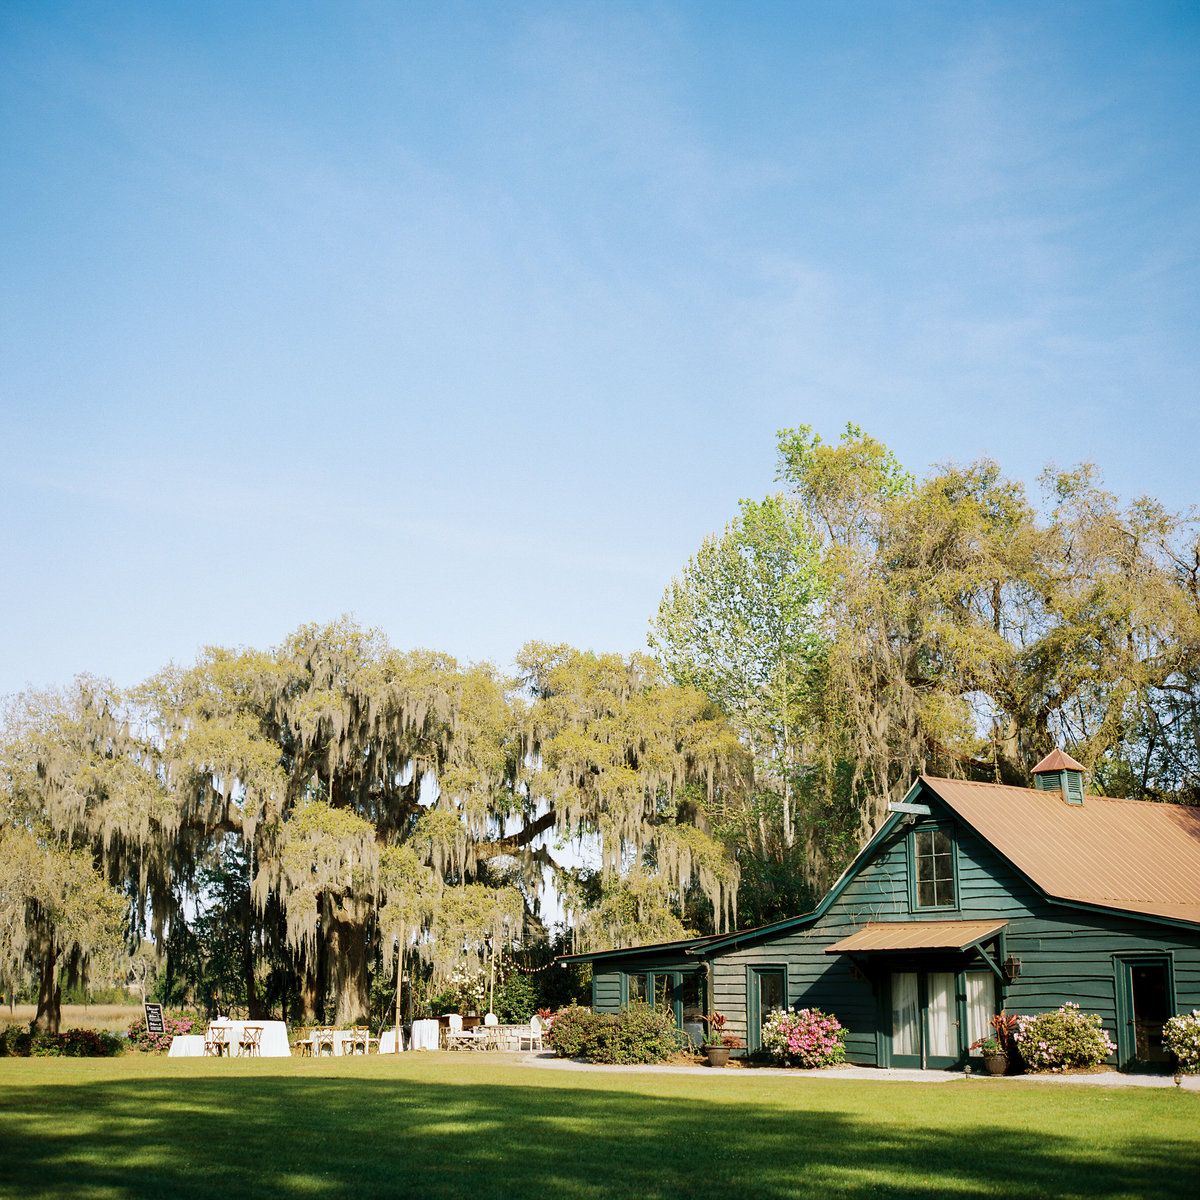 charleston-wedding-venues-magnolia-plantation-philip-casey-photography-041